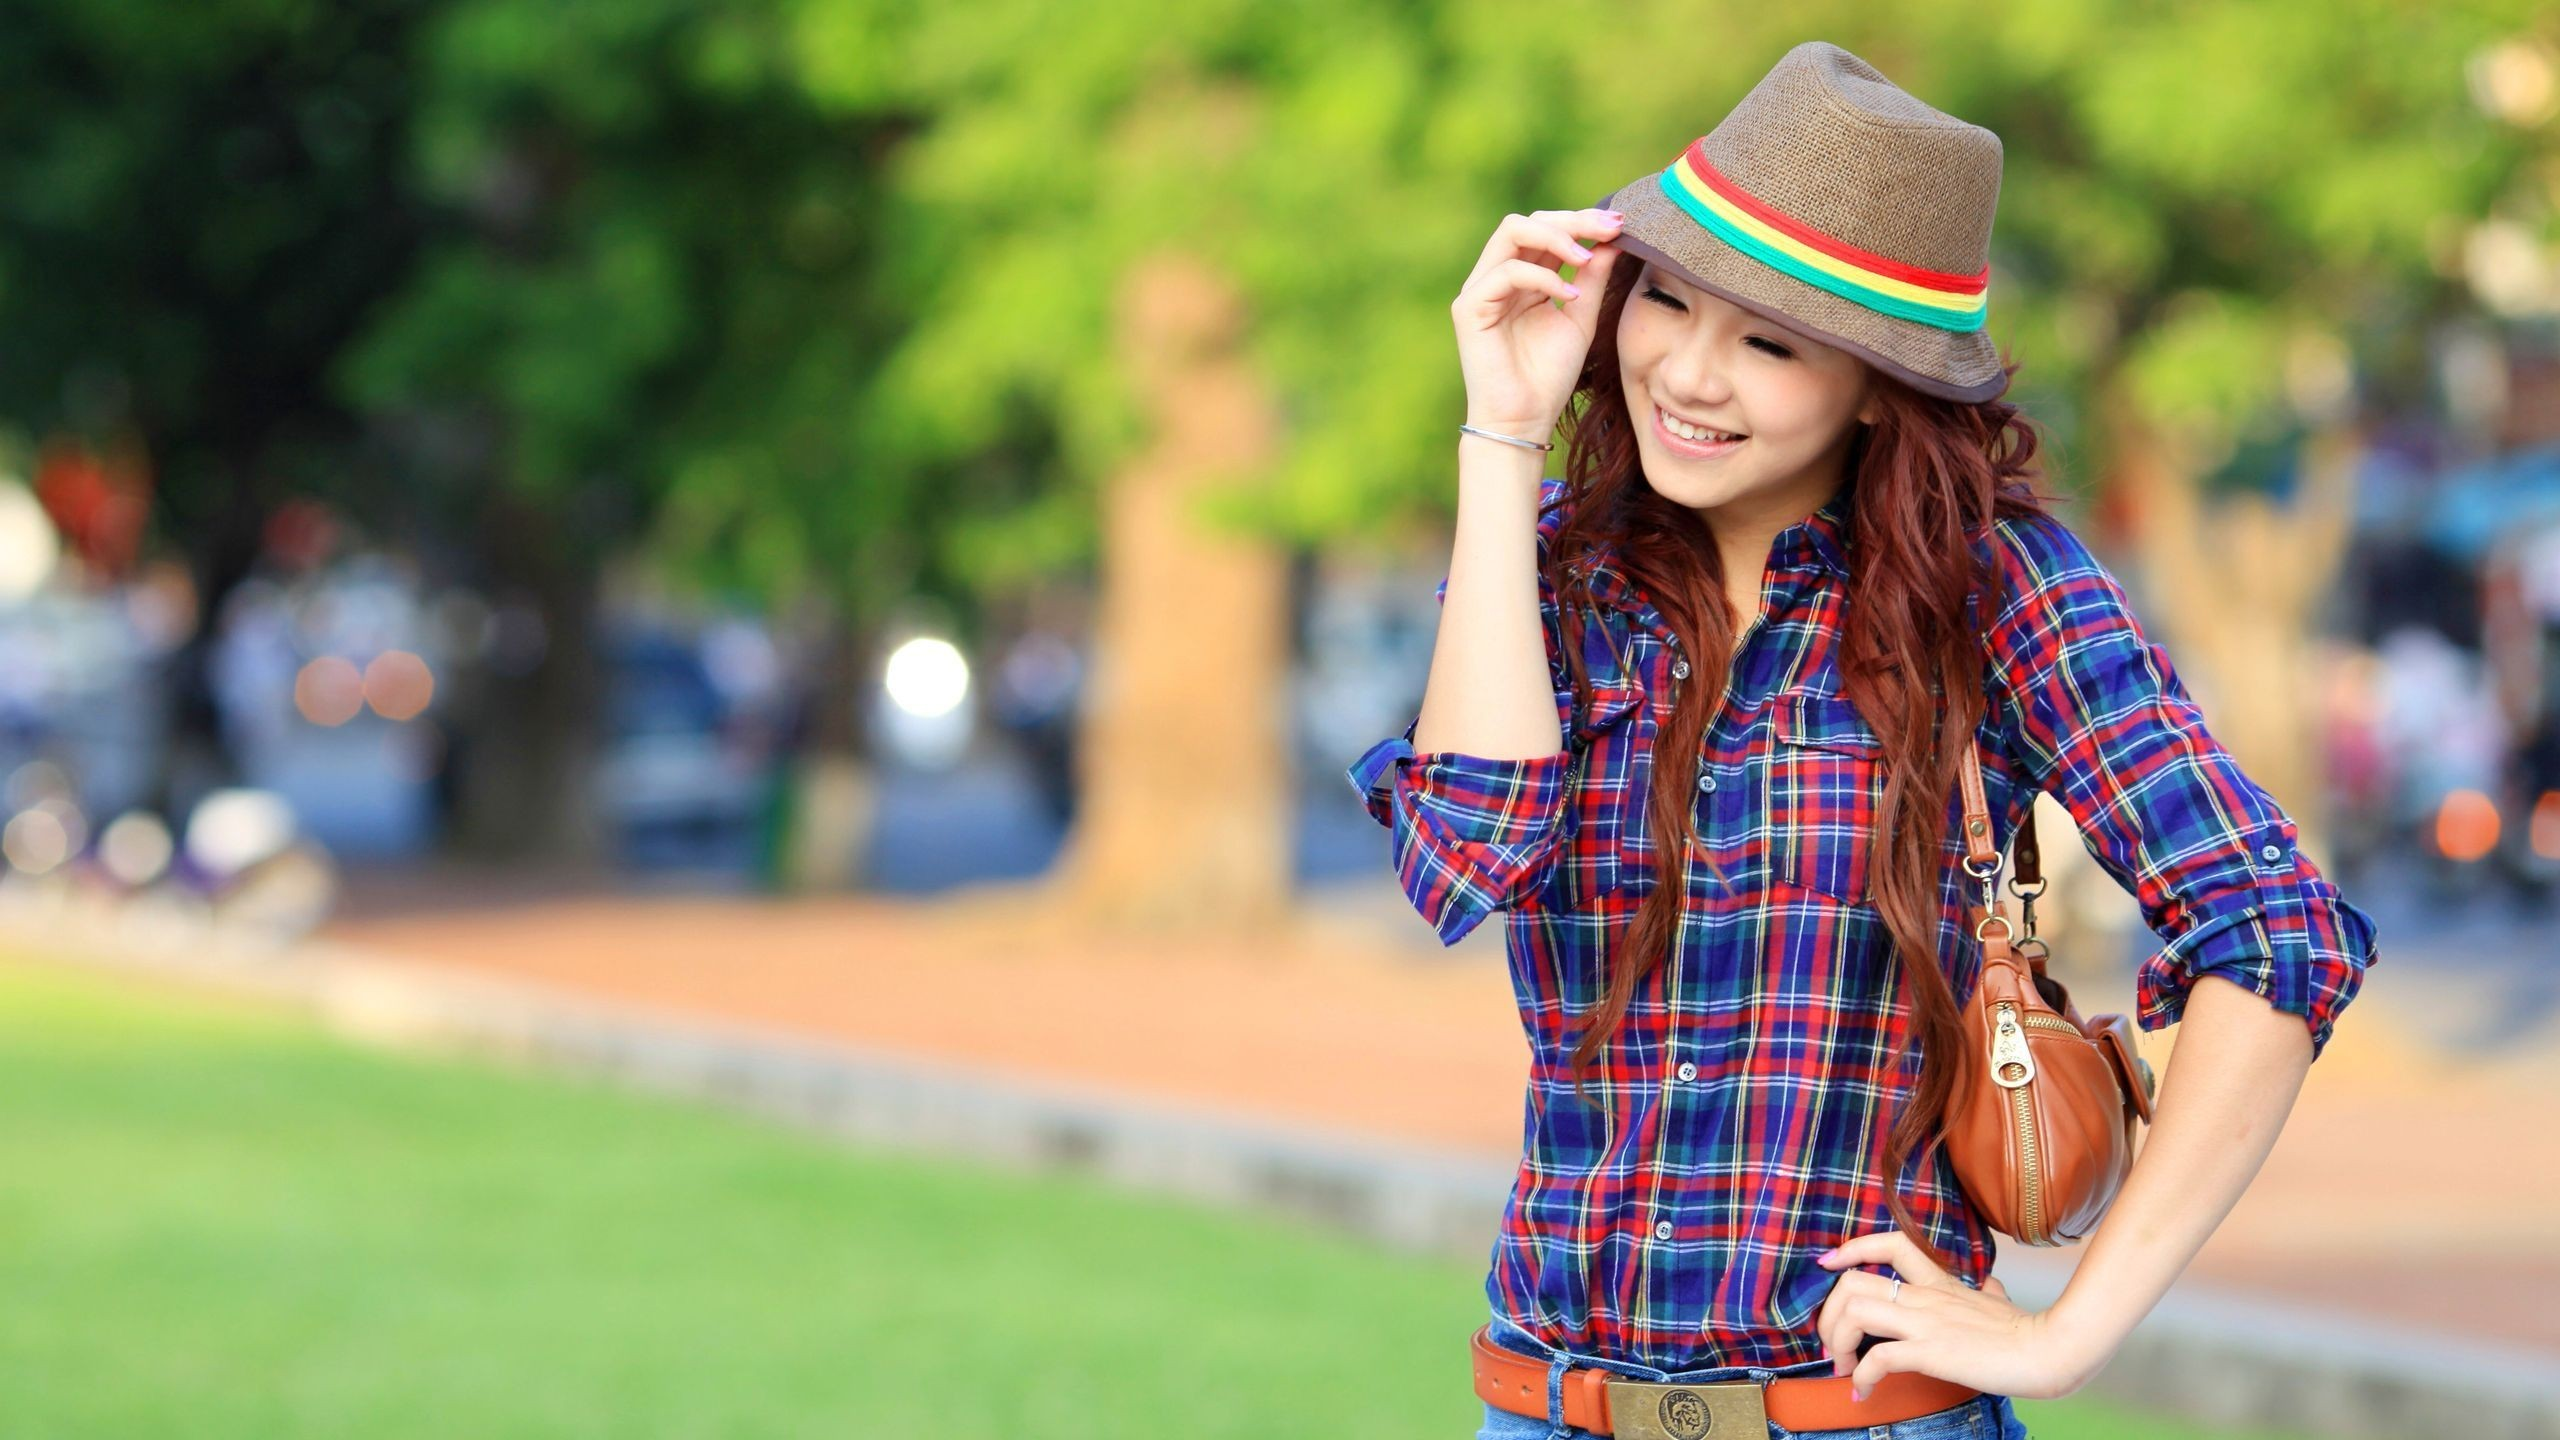 Res: 2560x1440, Trendy Girl